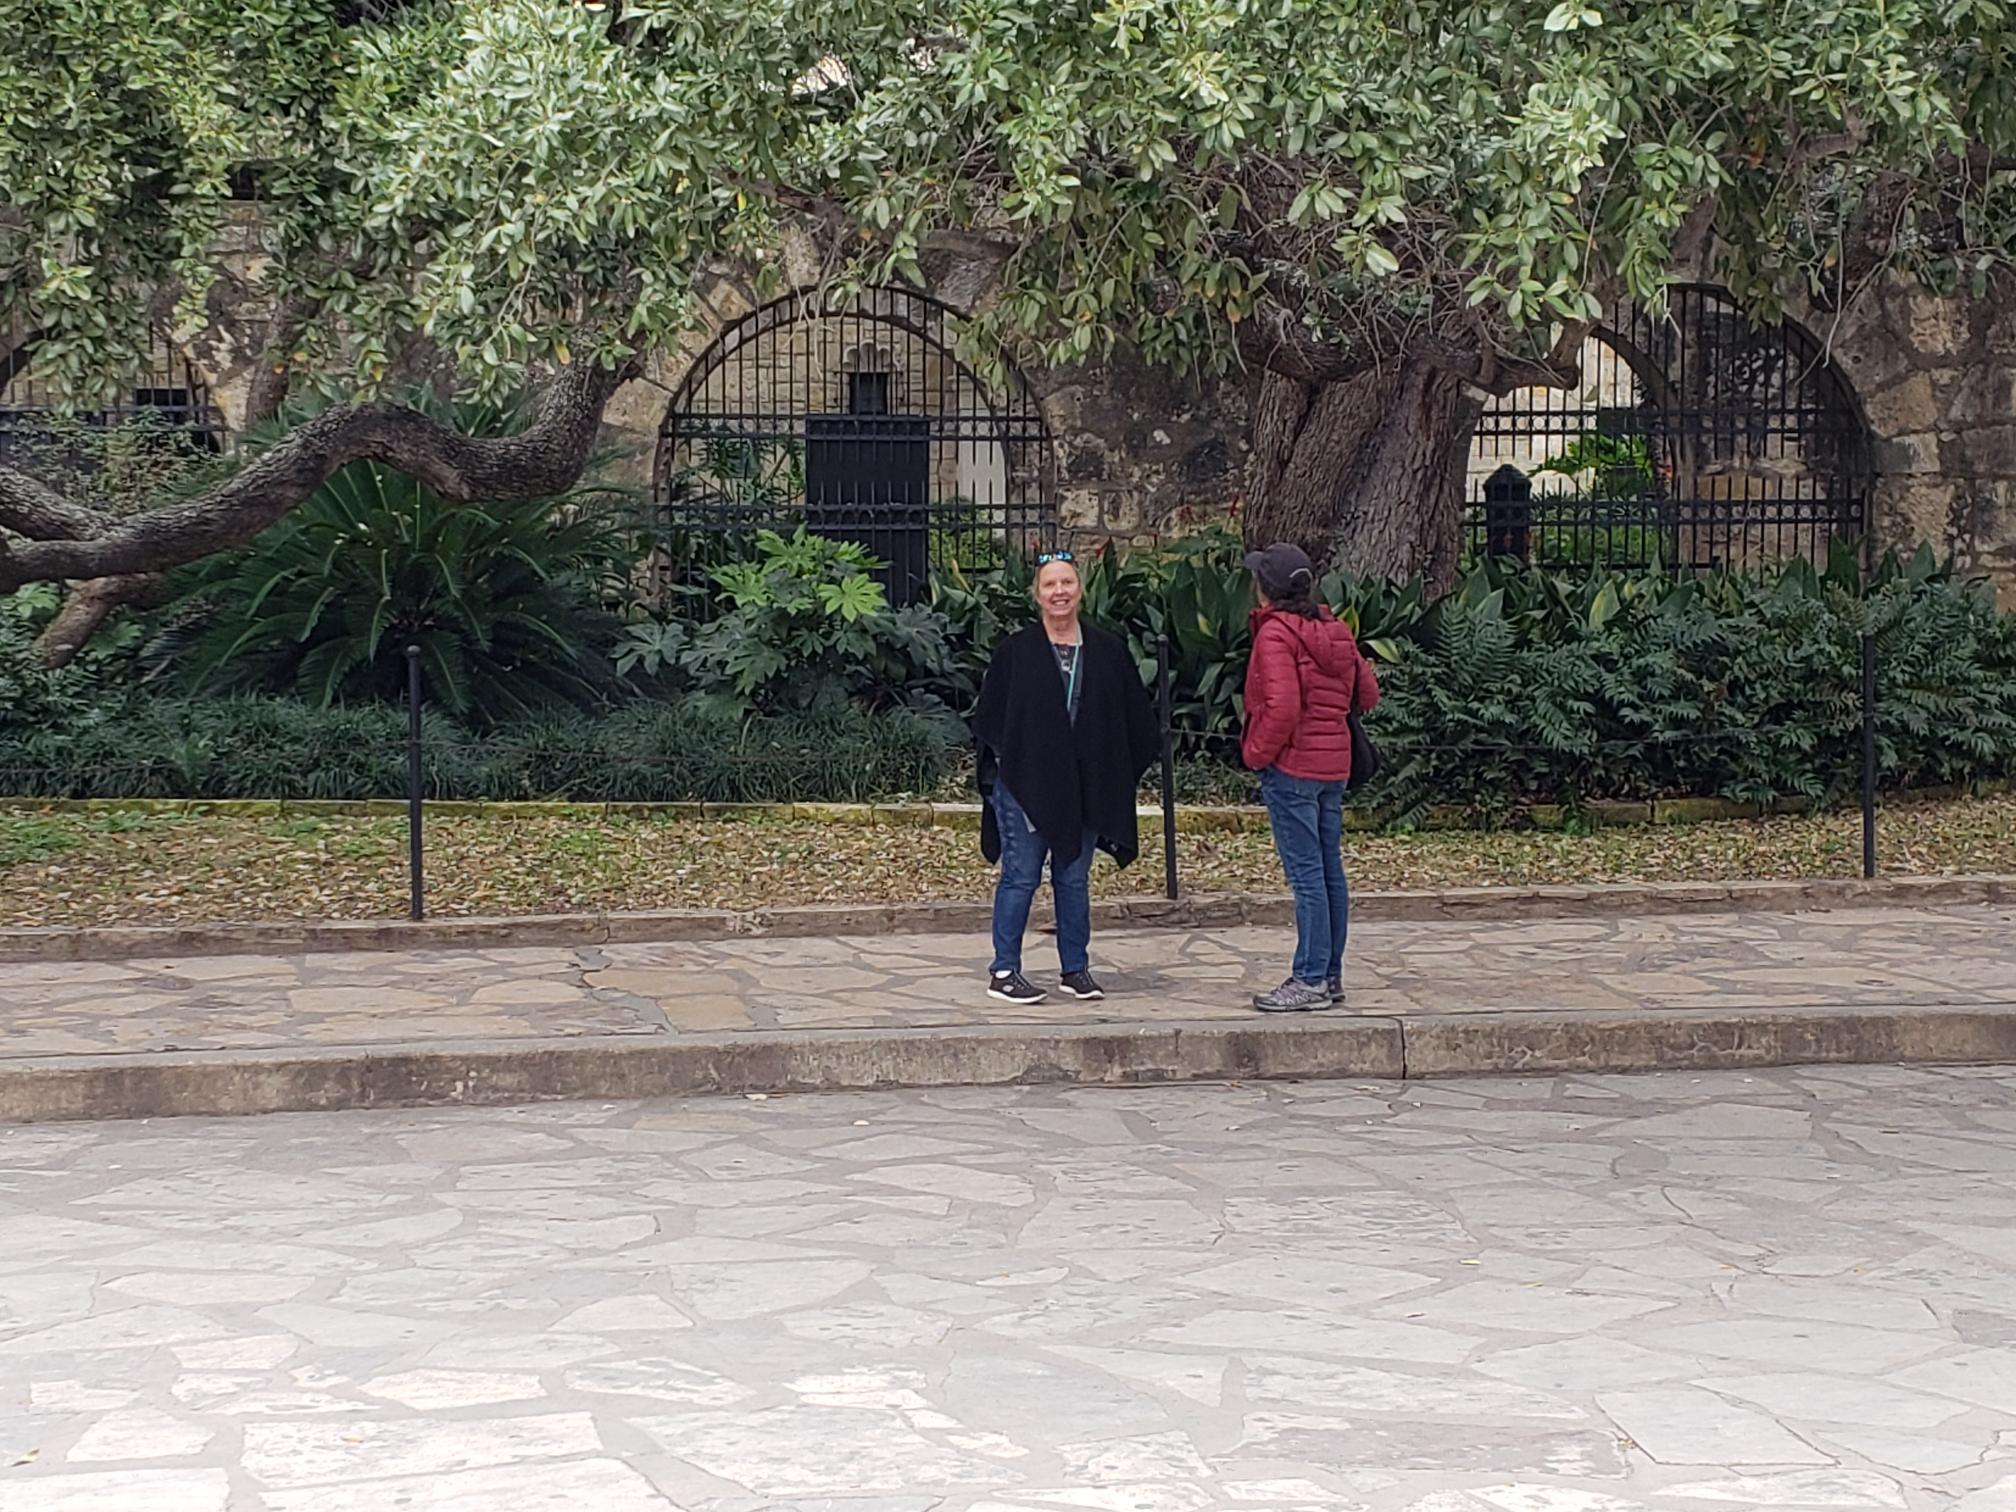 Across the street from The Alamo